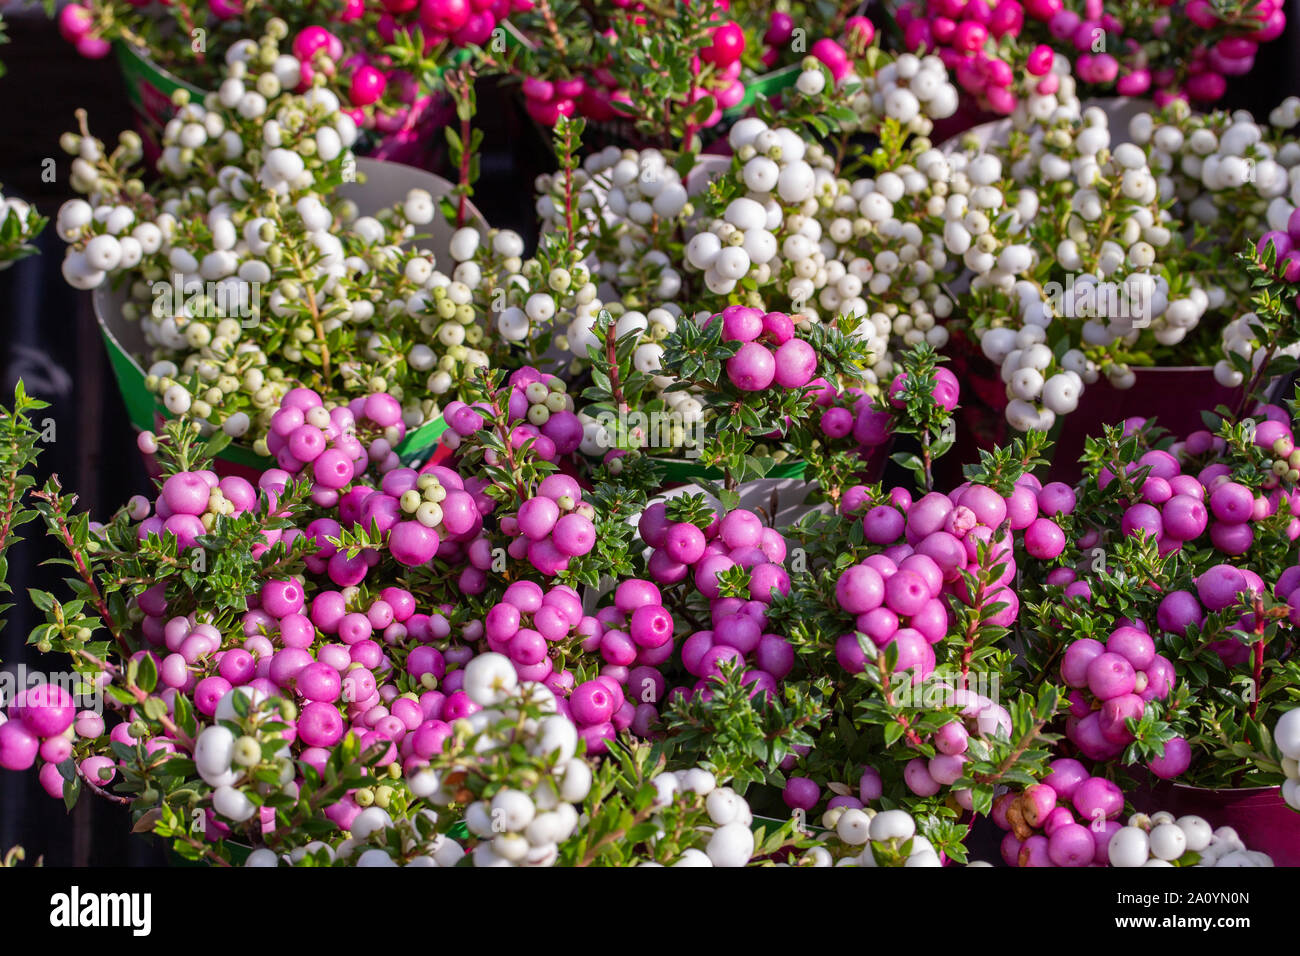 Pernettya Blanc.Gaultheria Mucronata Berry Fruit White Pink Purple Pernettya Gaultheria Potted Plant With Green Foliage Background Horizontal Vegetable Wallpaper Stock Photo Alamy